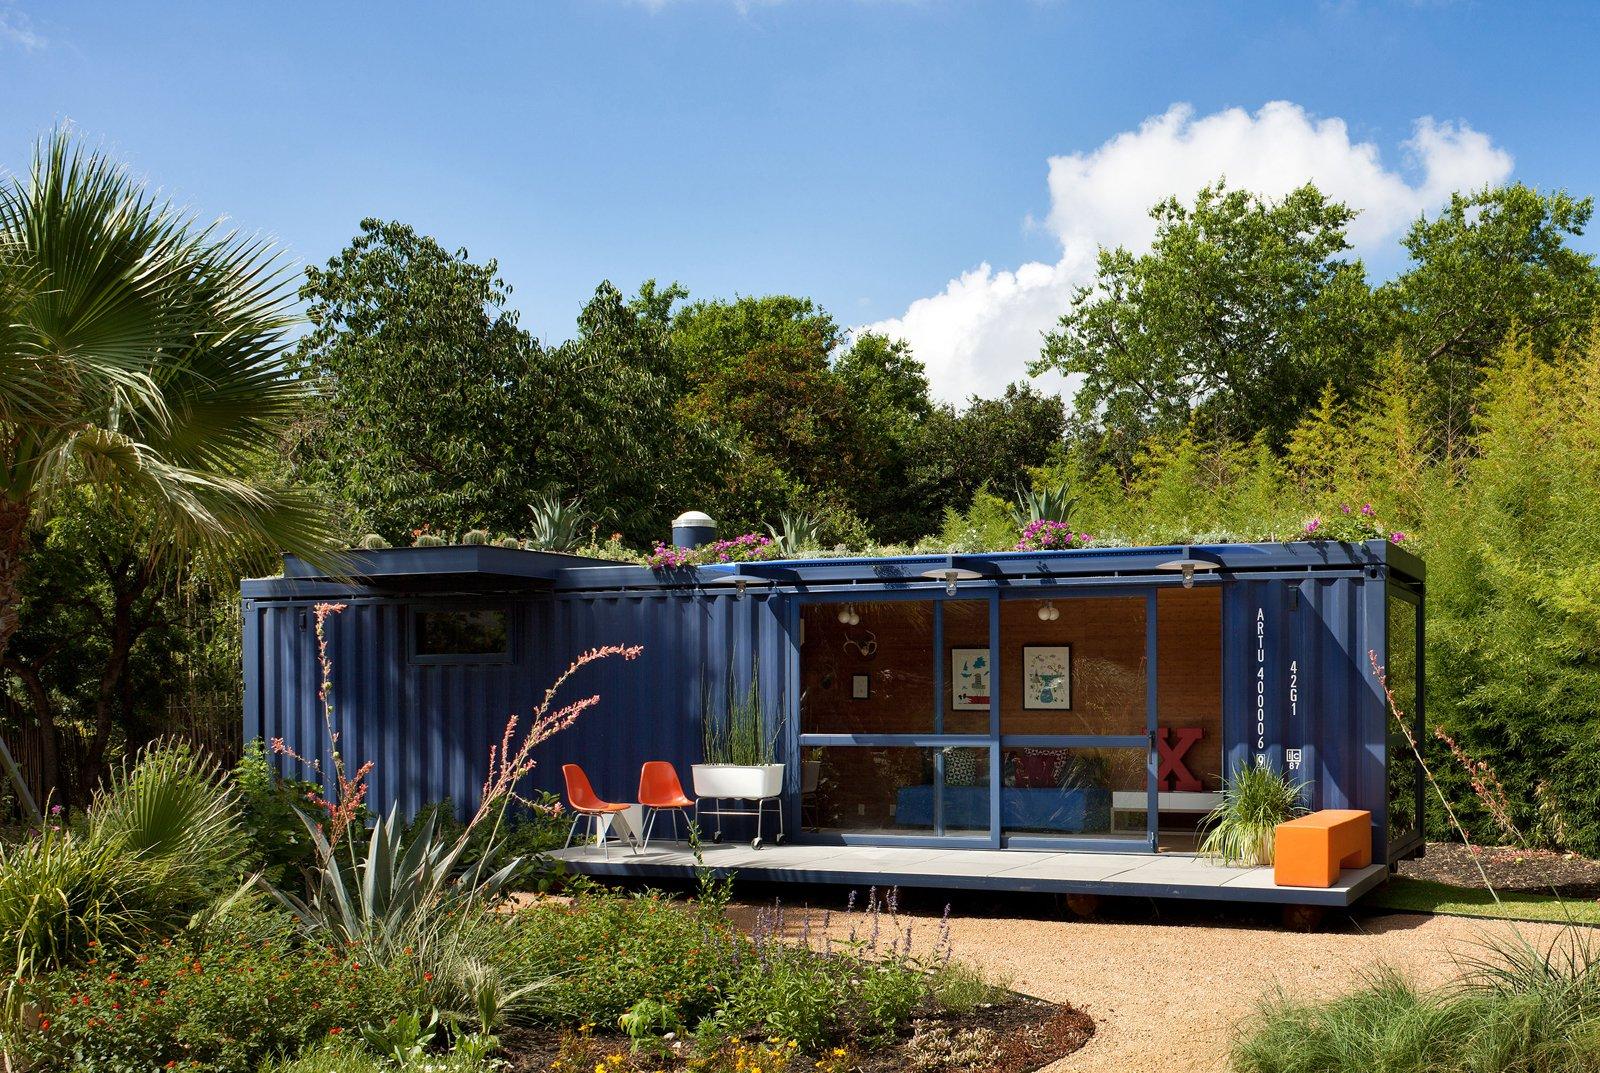 Best Kitchen Gallery: 10 Shipping Container Homes You Can Buy Right Now Dwell of Shipping Containers Home  on rachelxblog.com